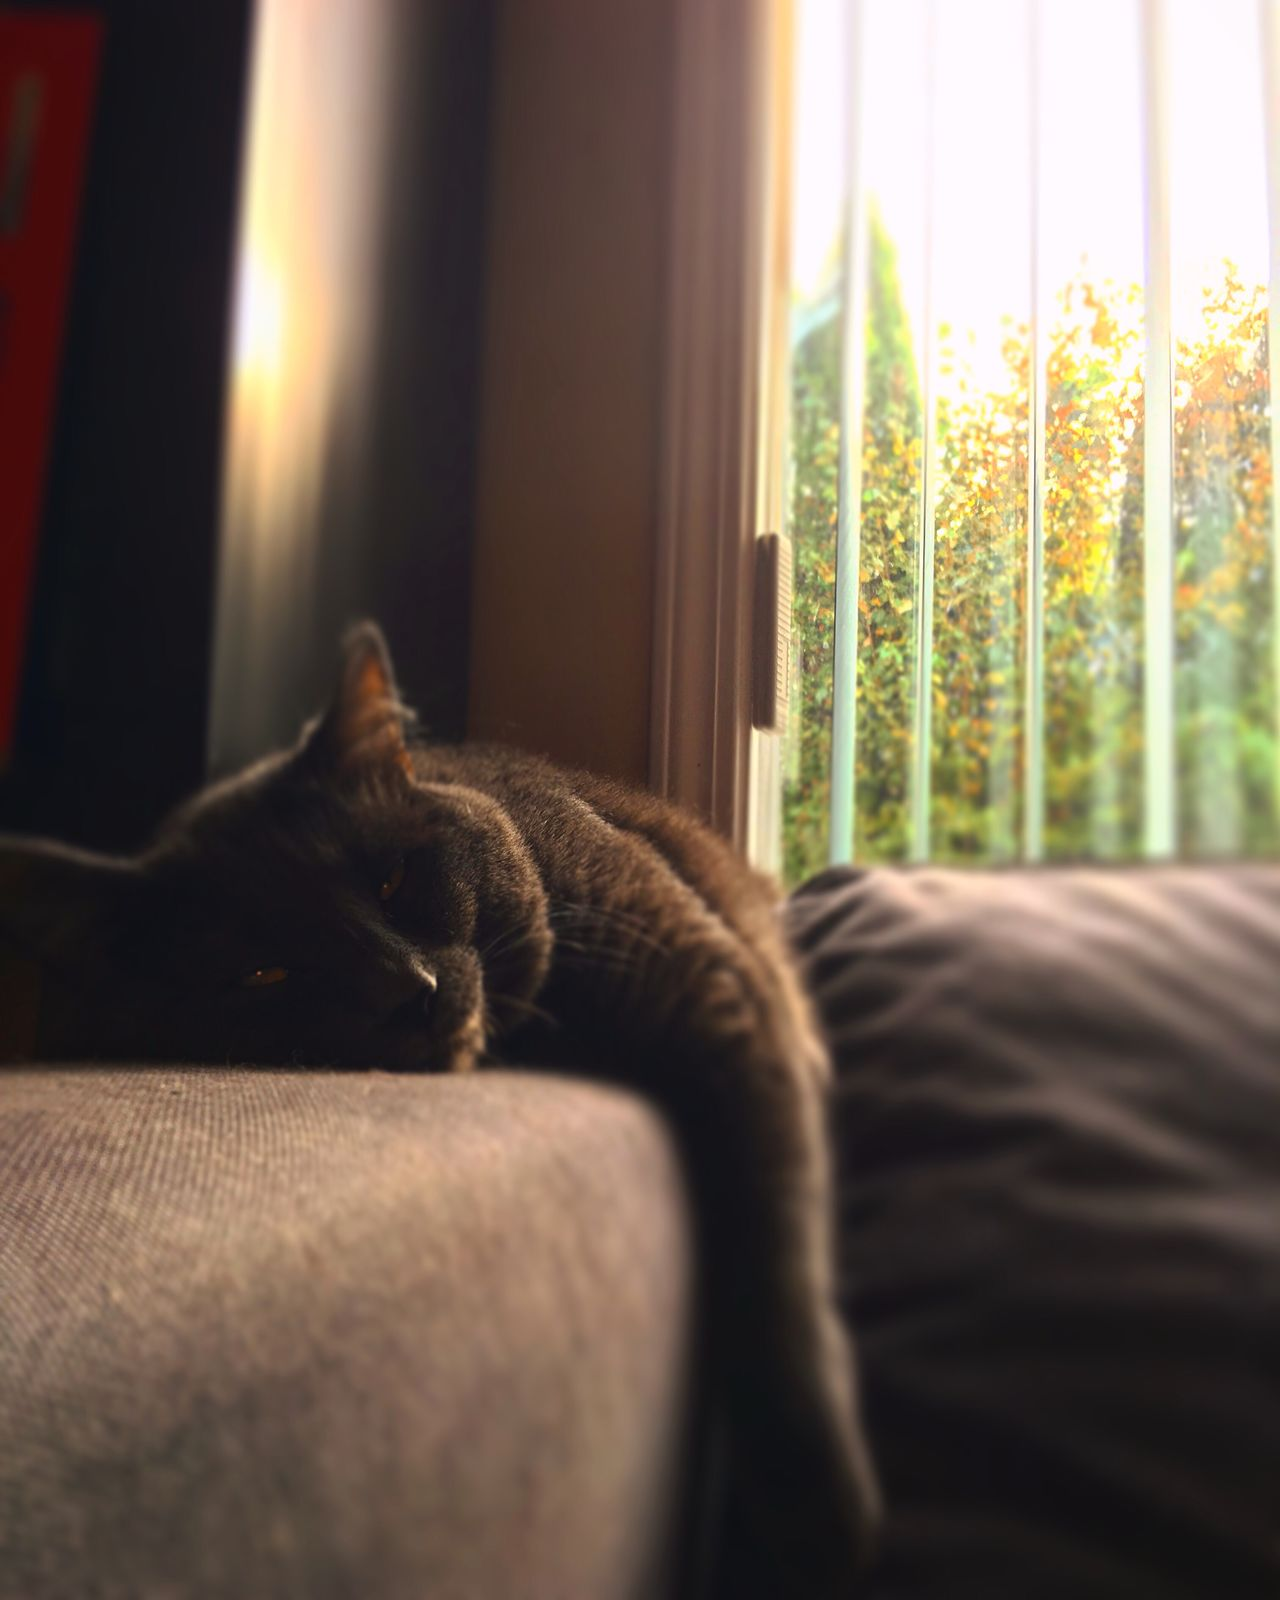 Autumn laziness Princess Canada Vancouver Cat♡ Pet Pure Love My Boss